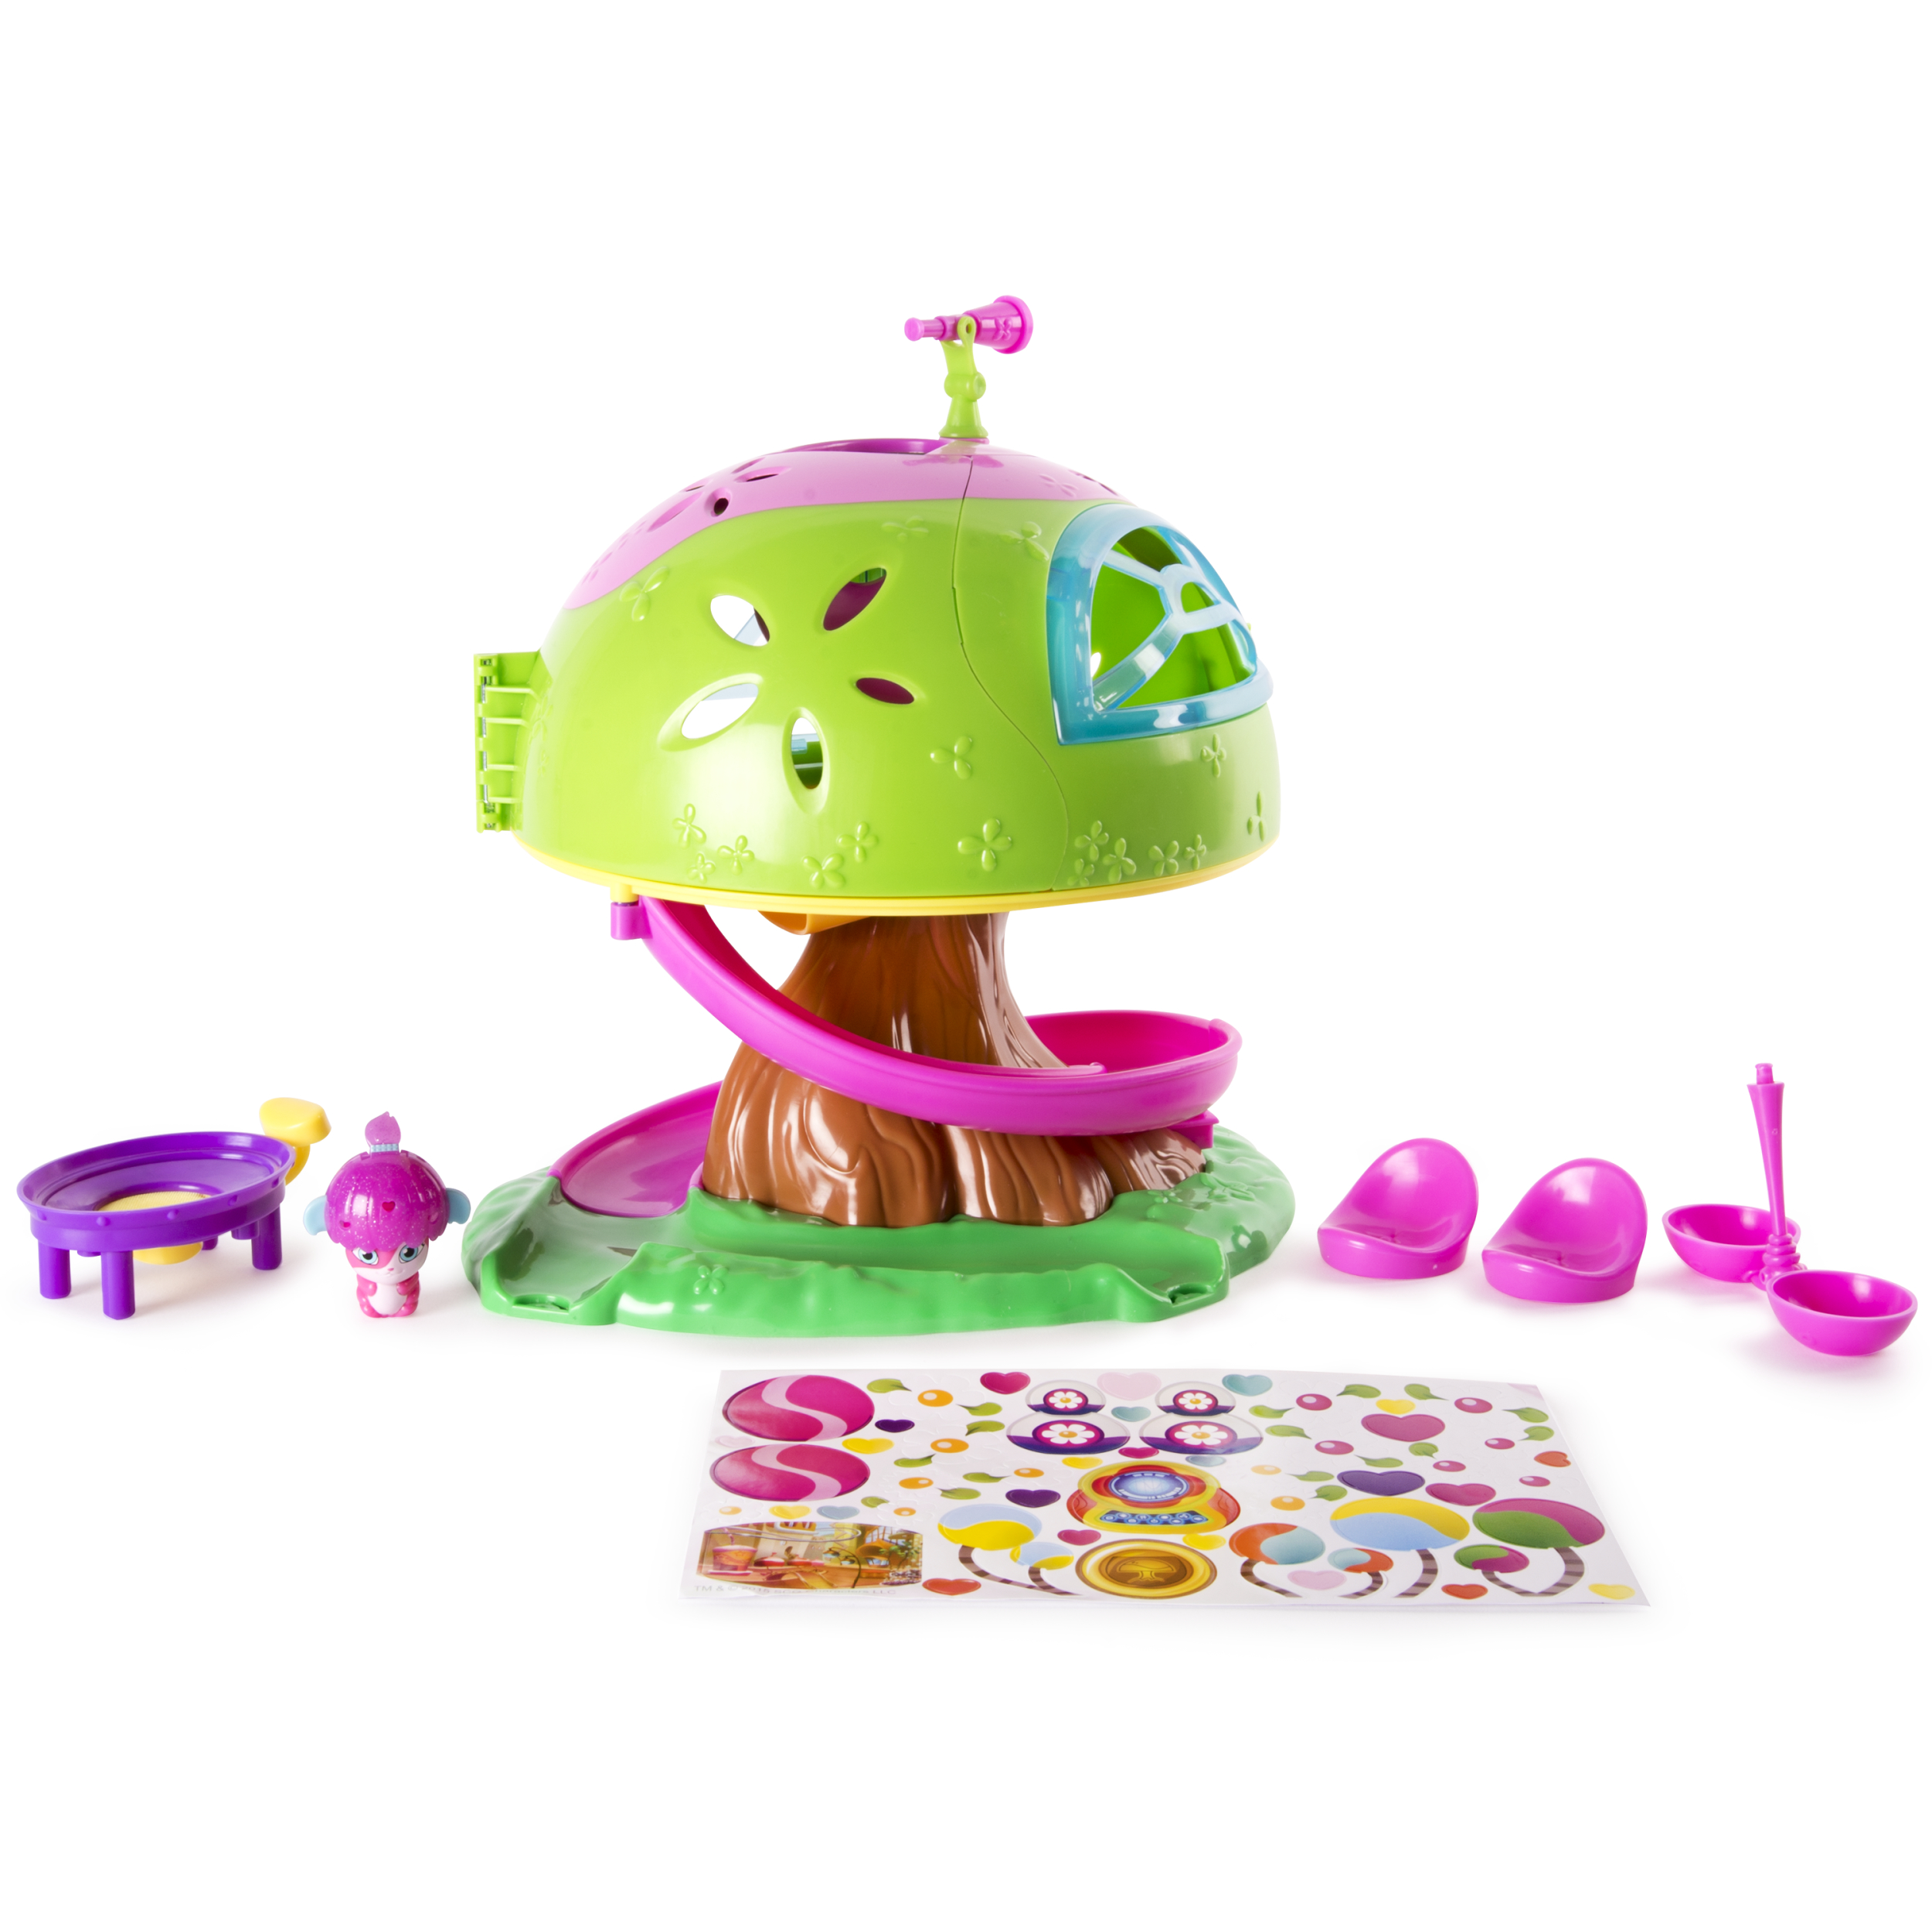 Popples, Deluxe Pop Open Treehouse Playset with Exclusive Pop Up Transforming Figure, by Spin Master